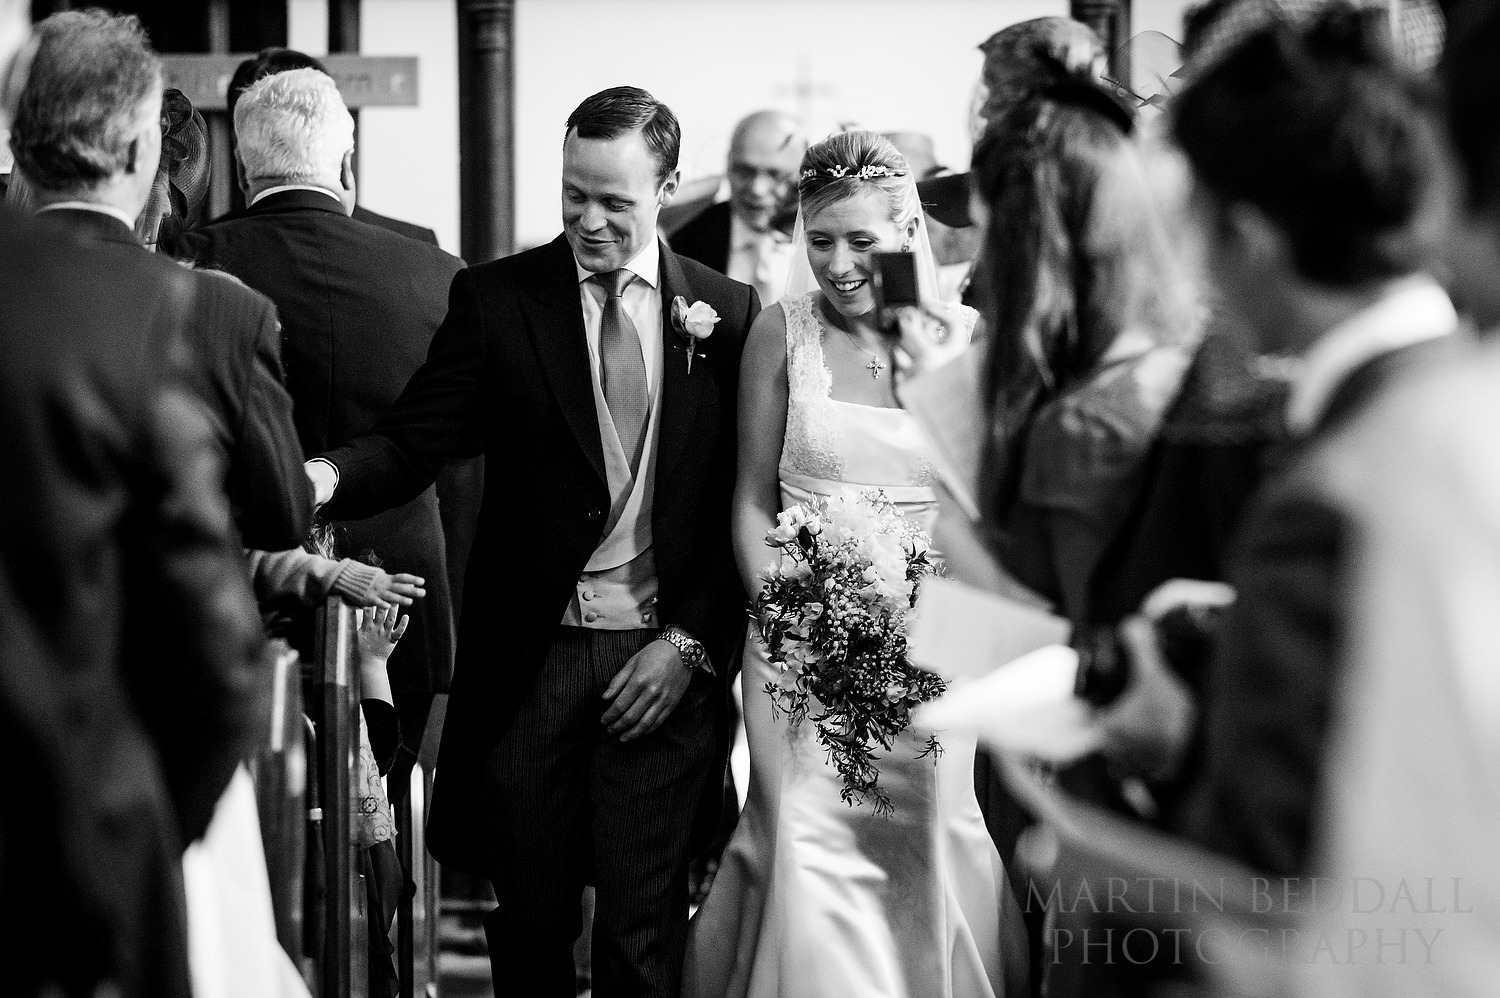 Bride and groom in the church aisle